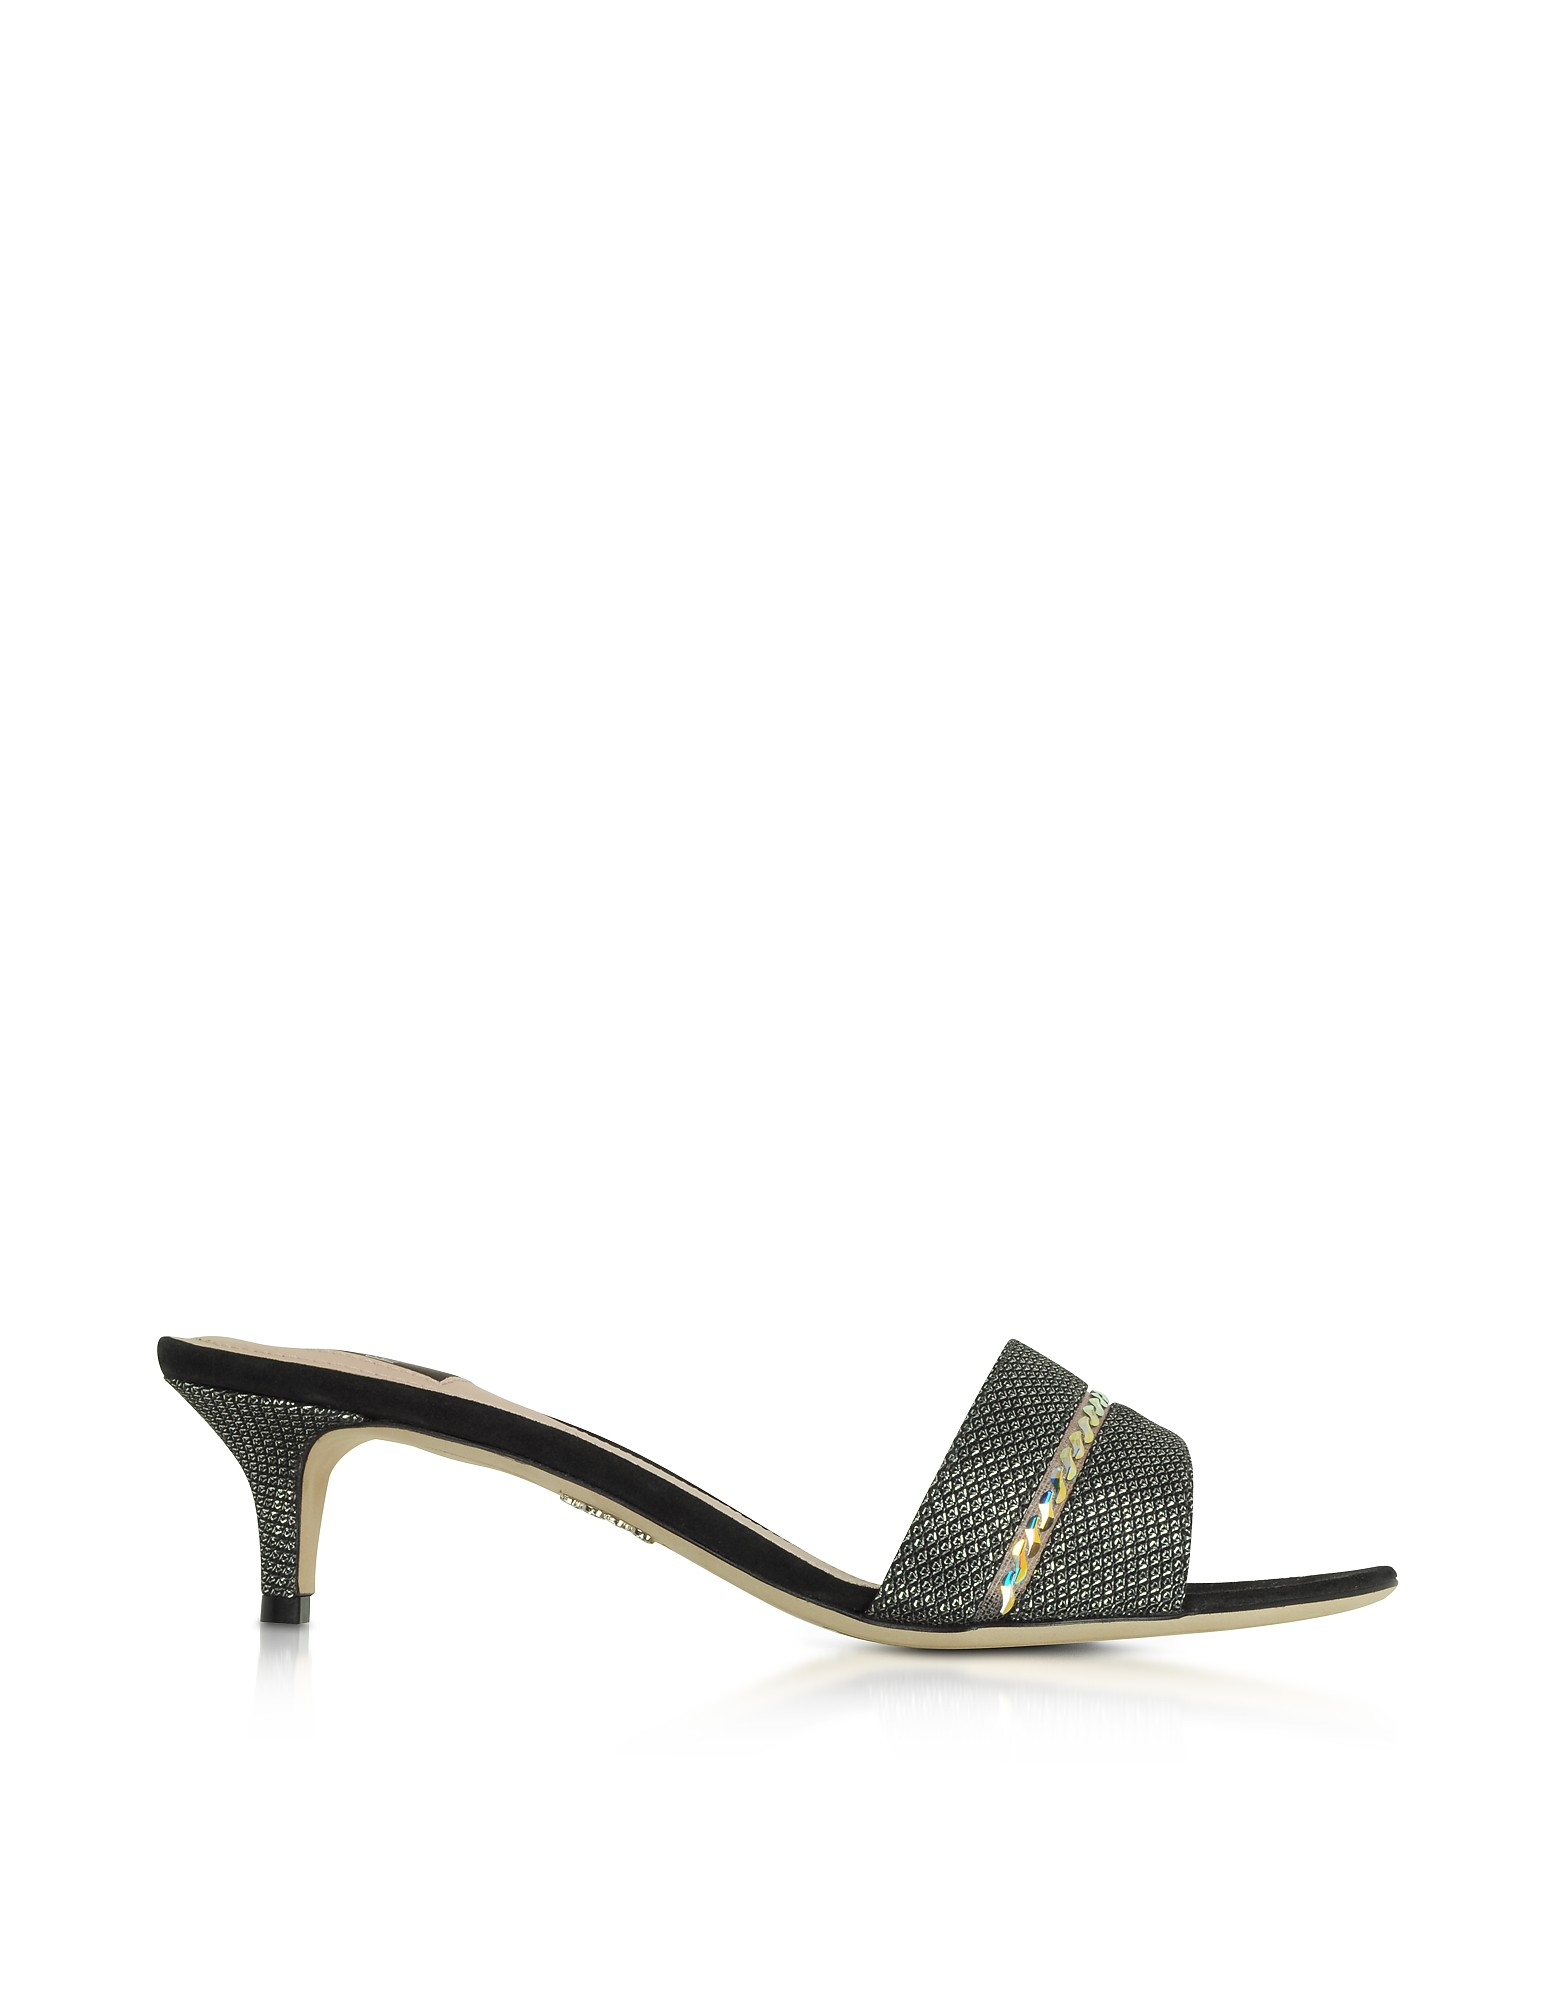 RODO Designer Shoes, Suede and Lurex Mid-Heel Sandals